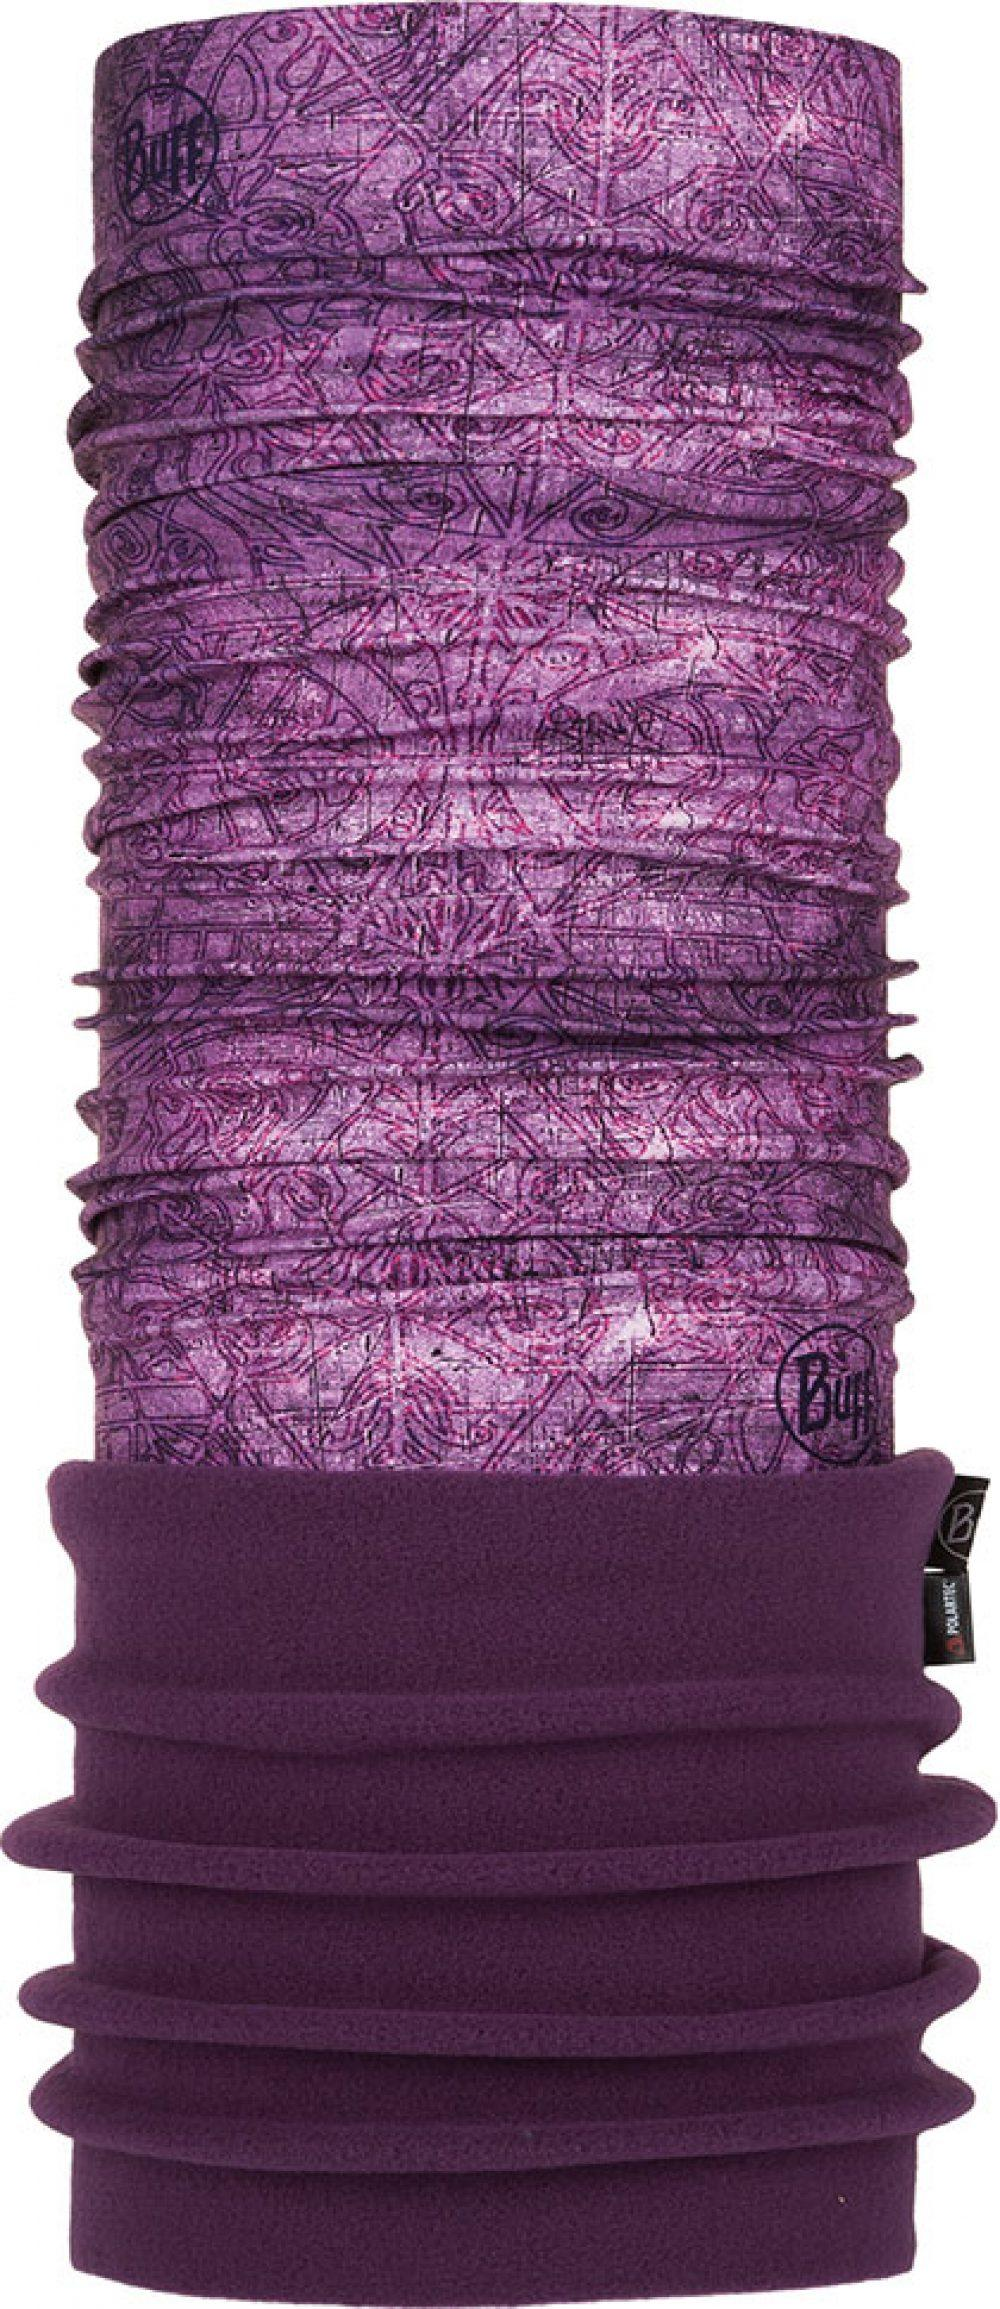 "Studio photo of the Polar Buff® Design ""Siggy Purple"". Source: buff.eu"